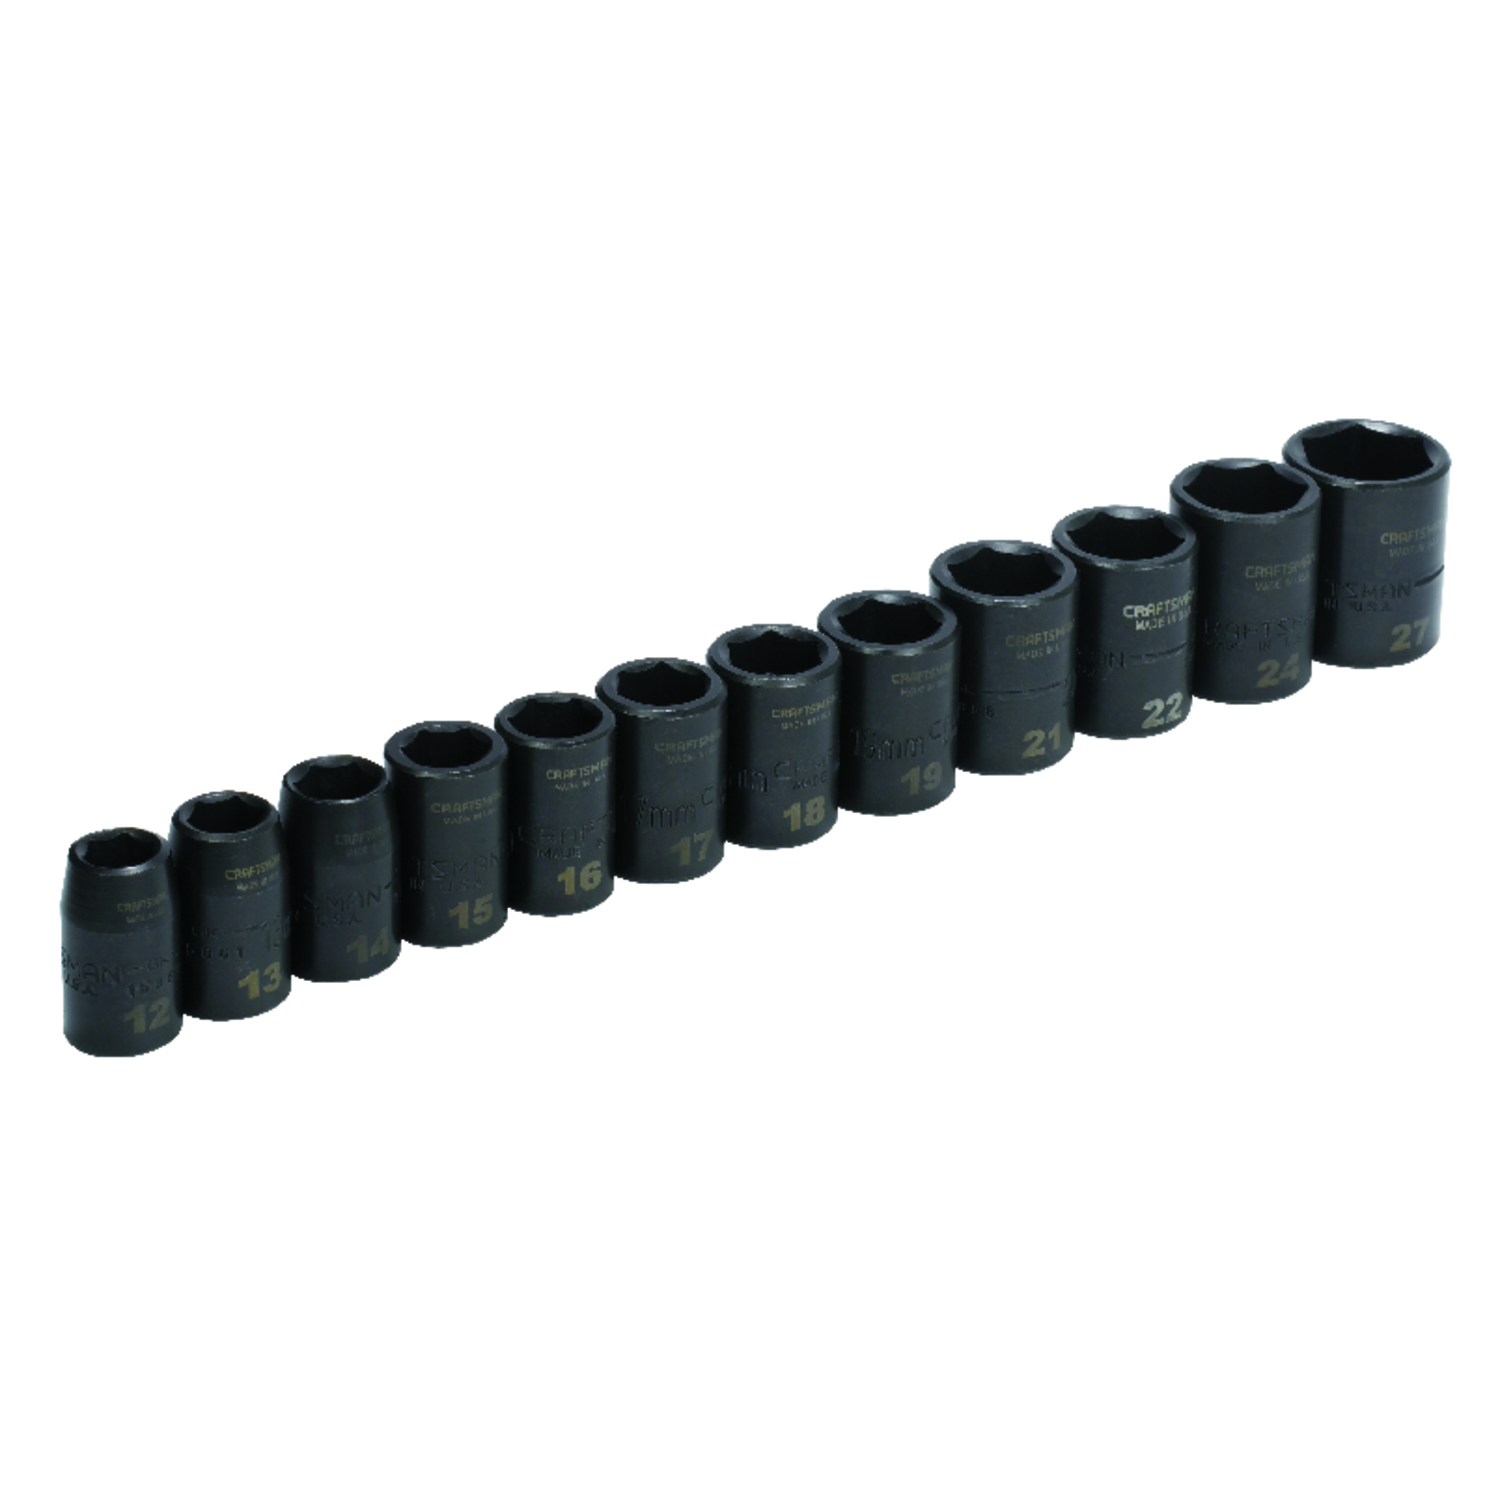 Craftsman  27 mm  x 1/2 in. drive  Metric  6 Point Impact Socket Set  12 pc.